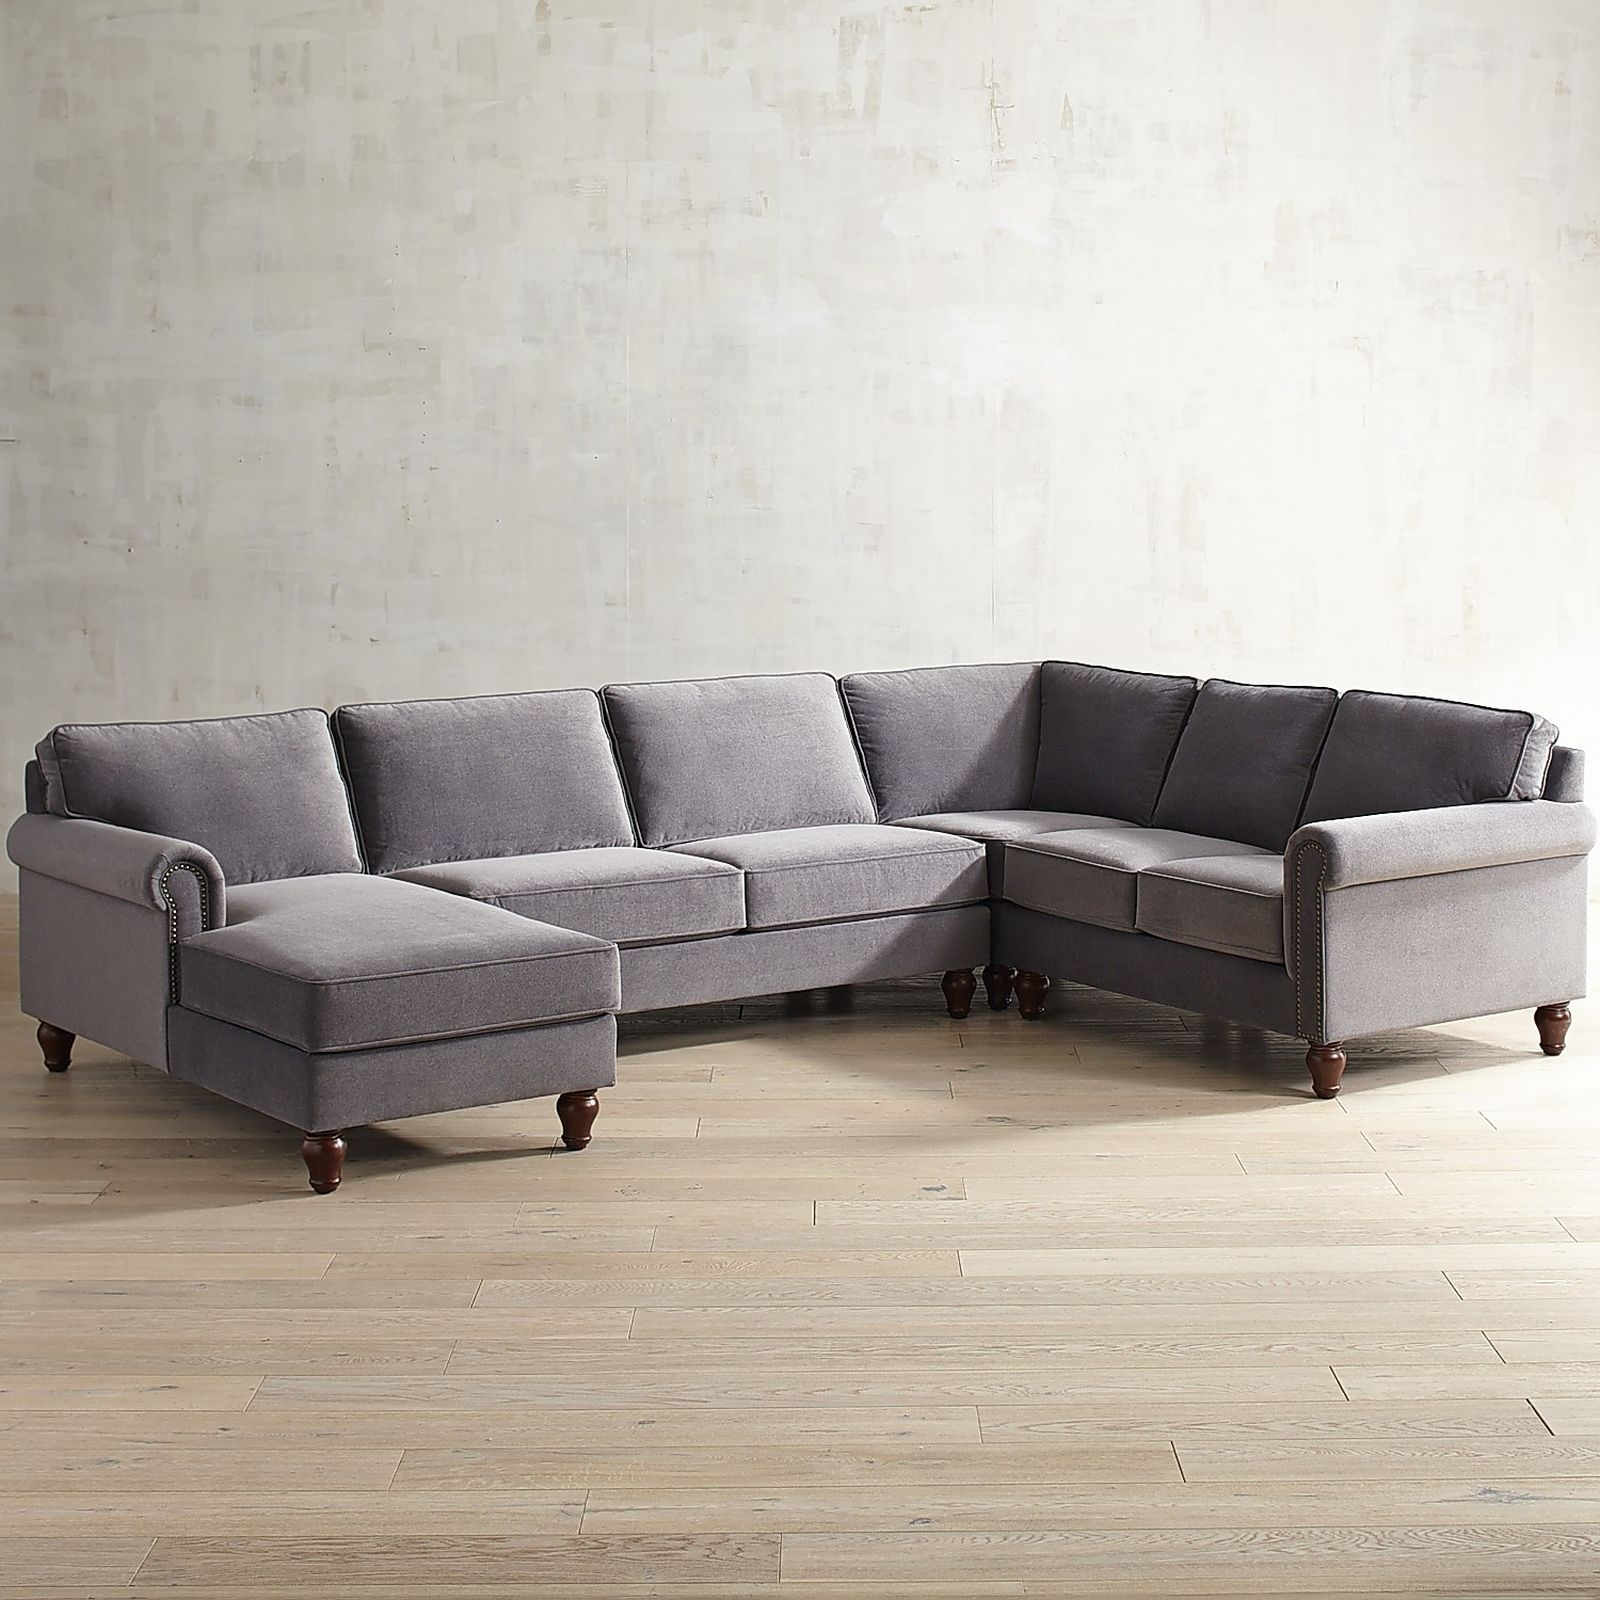 Cheap Sofas On Sale: 2019 Popular Canada Sale Sectional Sofas